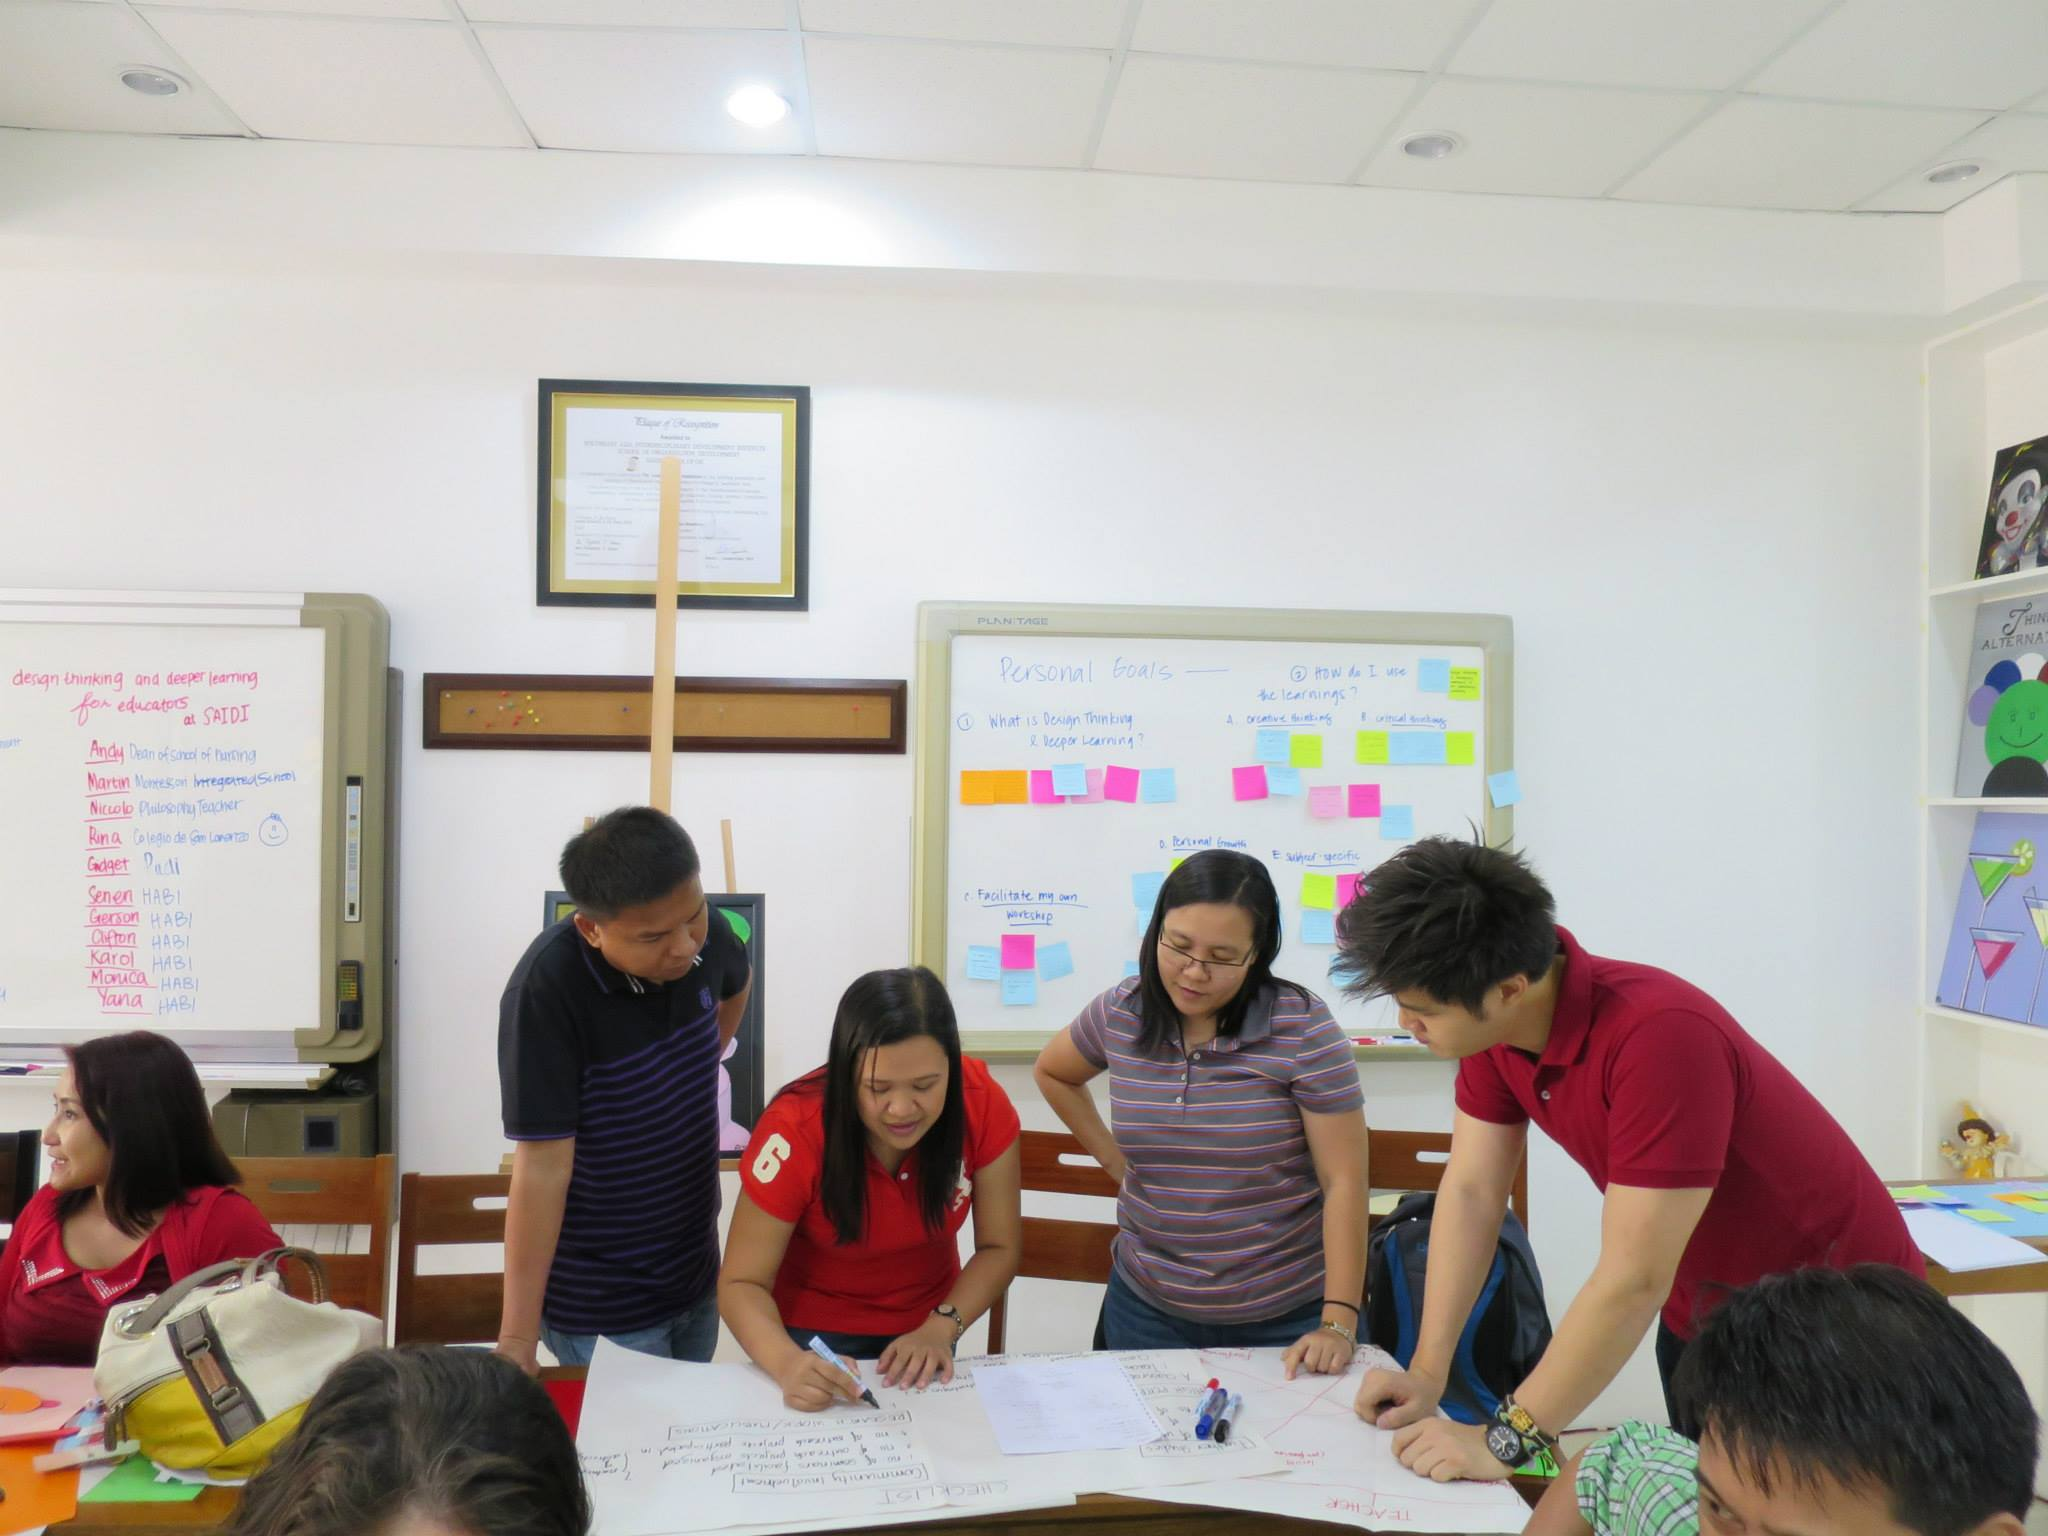 Designing for Powerful Learning